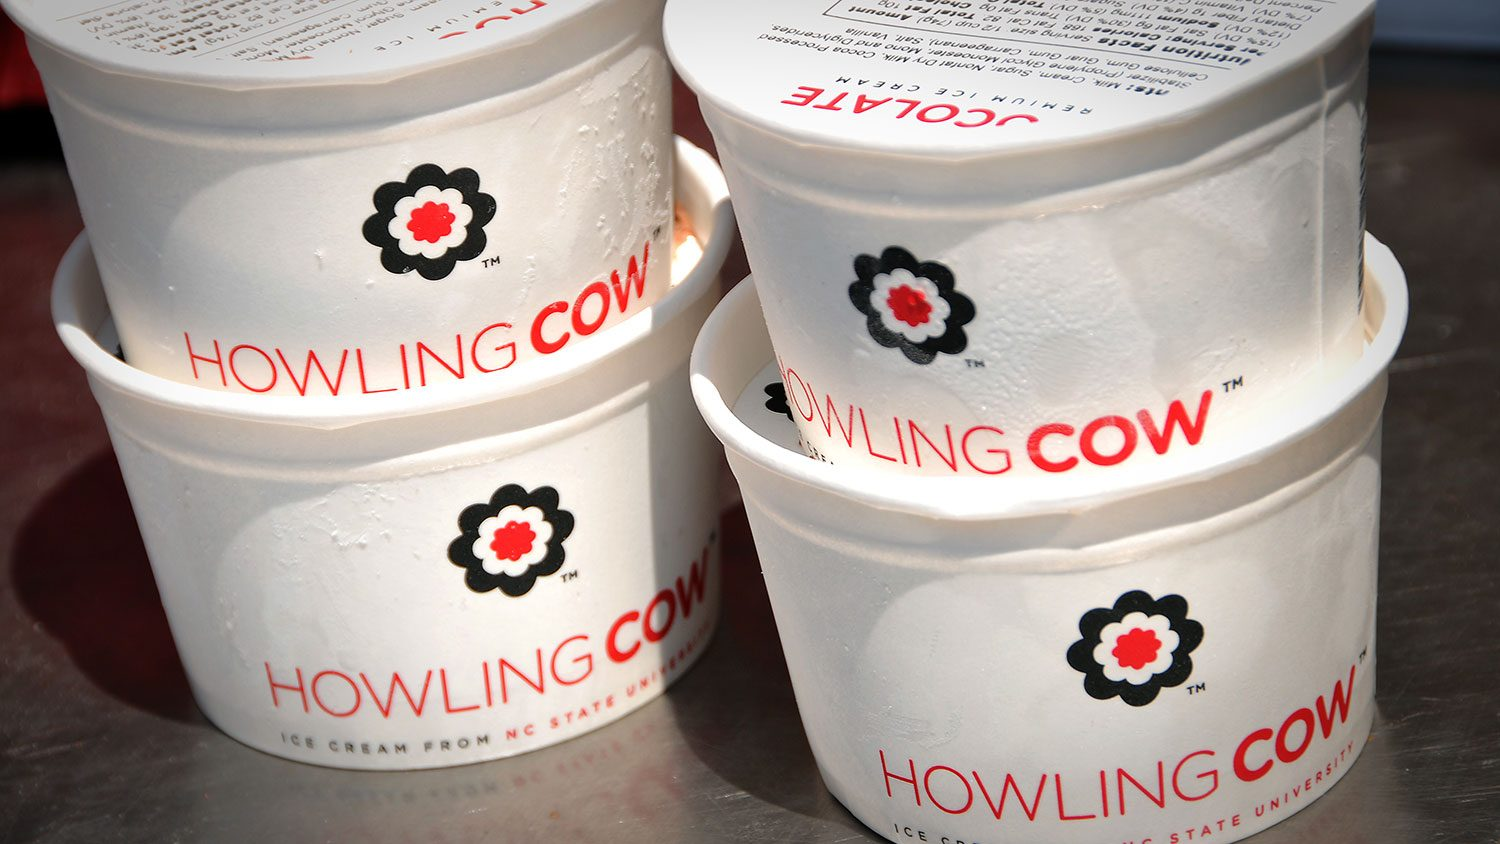 Stacked containers of Howling Cow ice cream